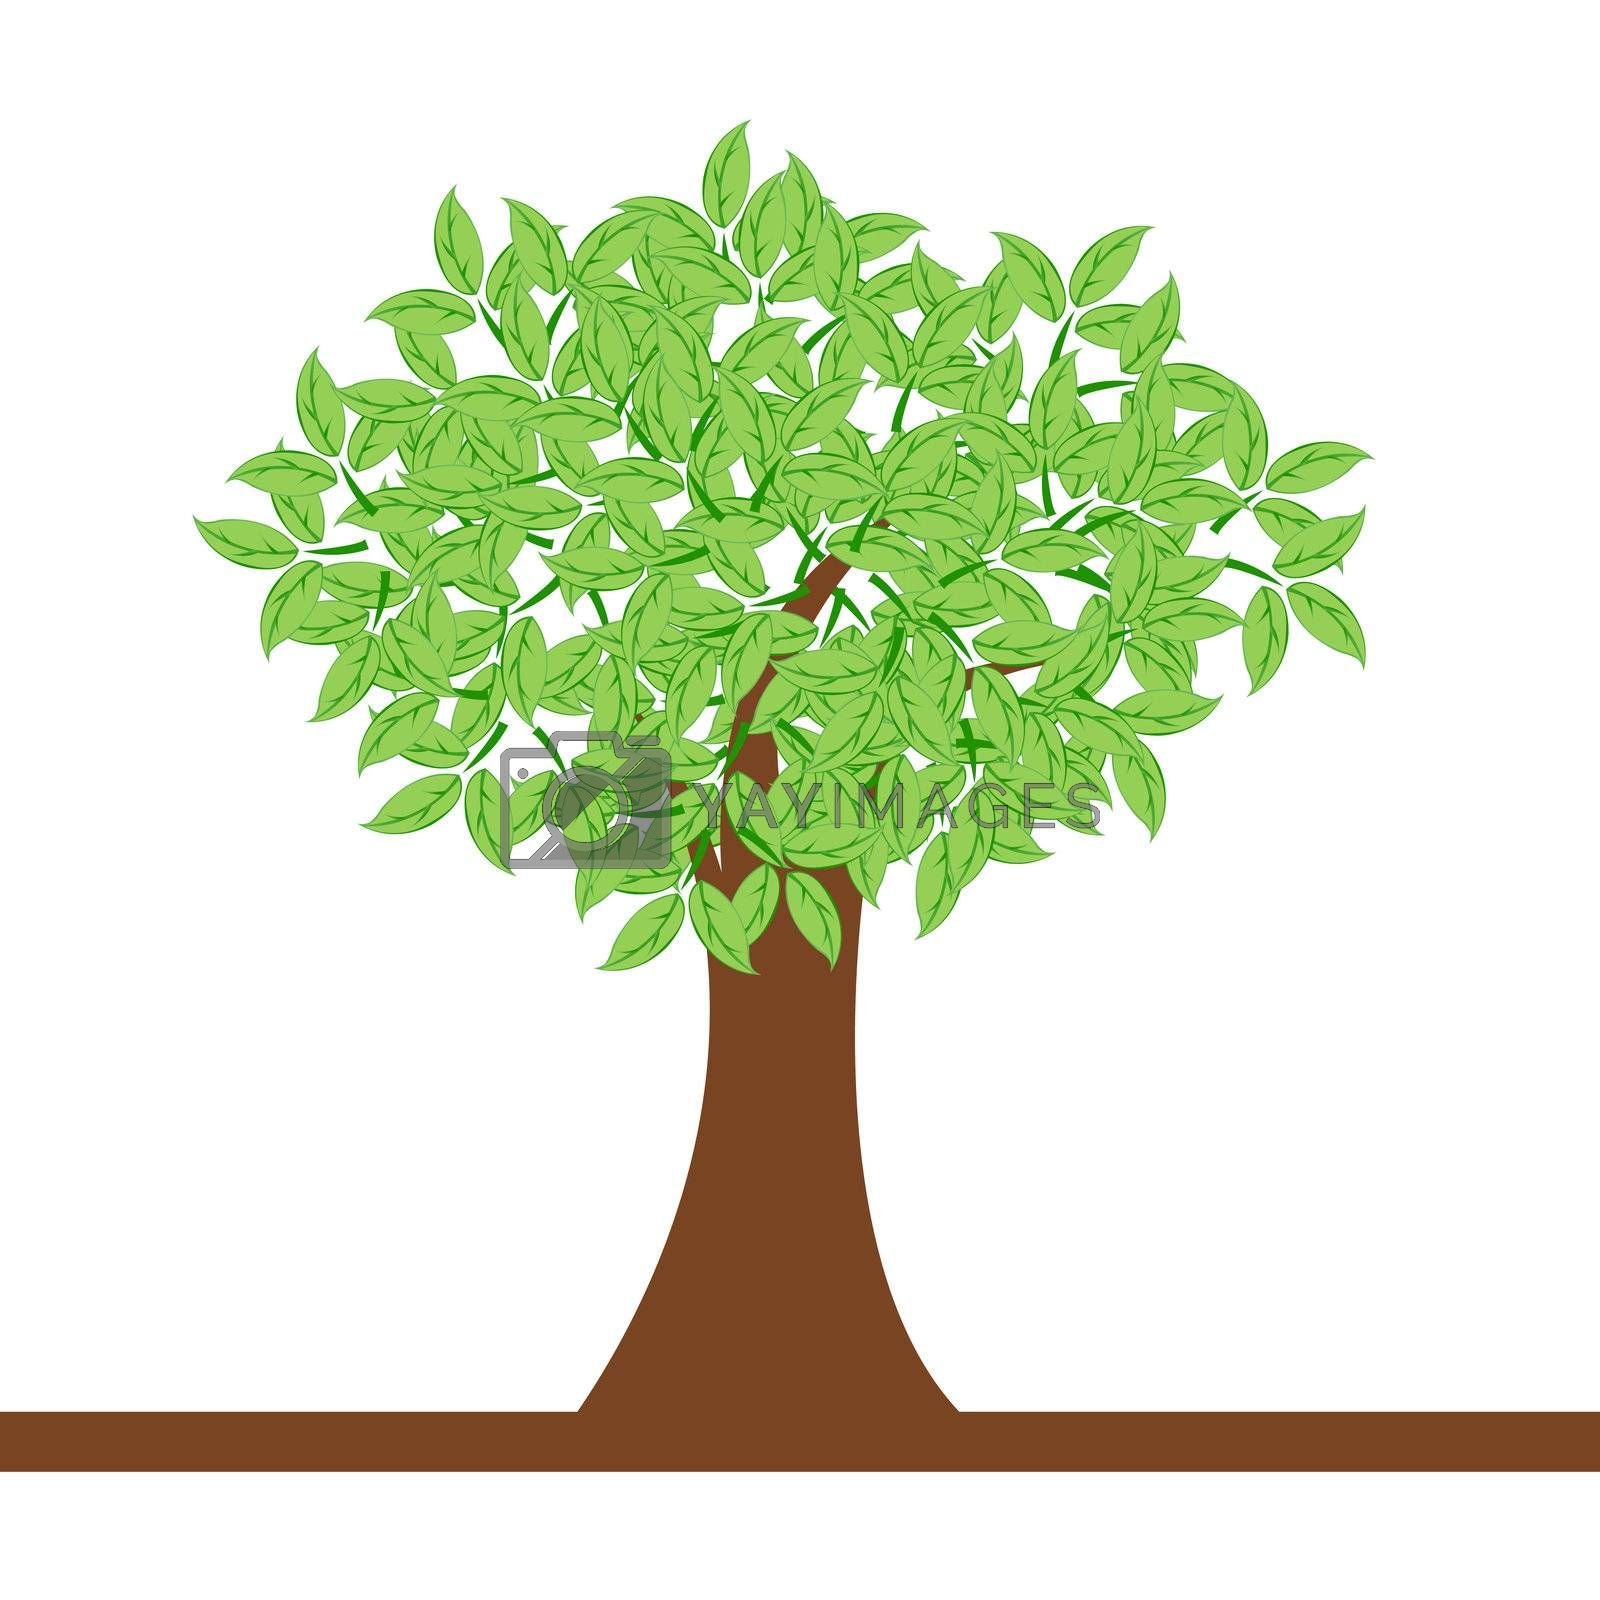 illustration of natural tree on white background